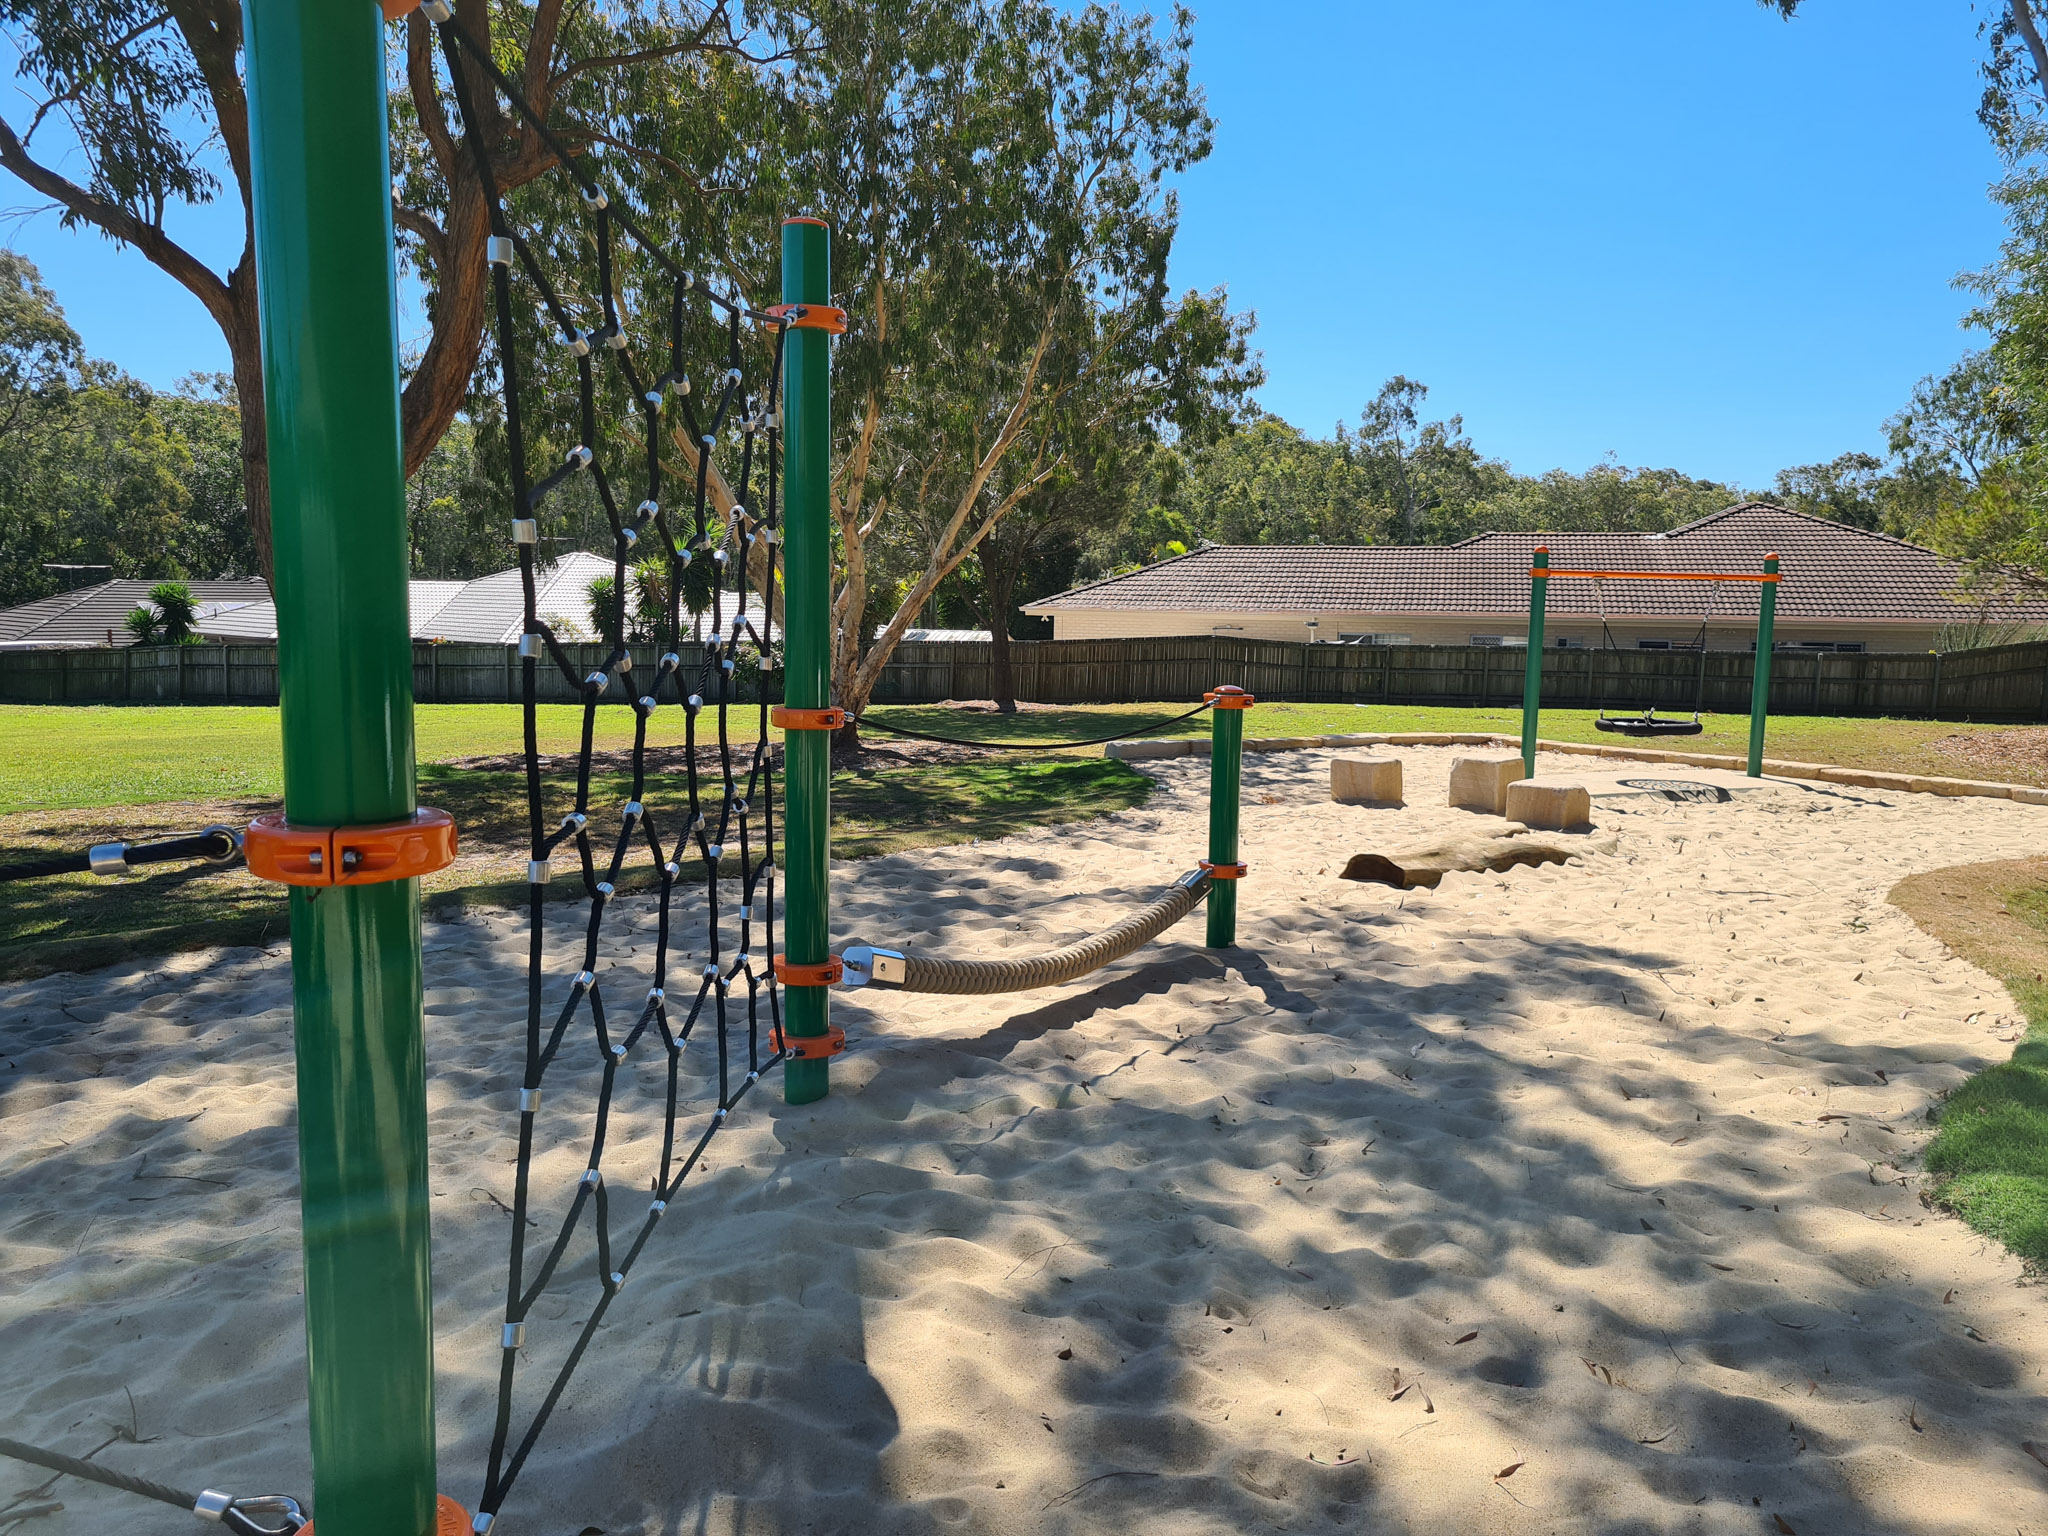 riley-peter-place-park-rope-play-2